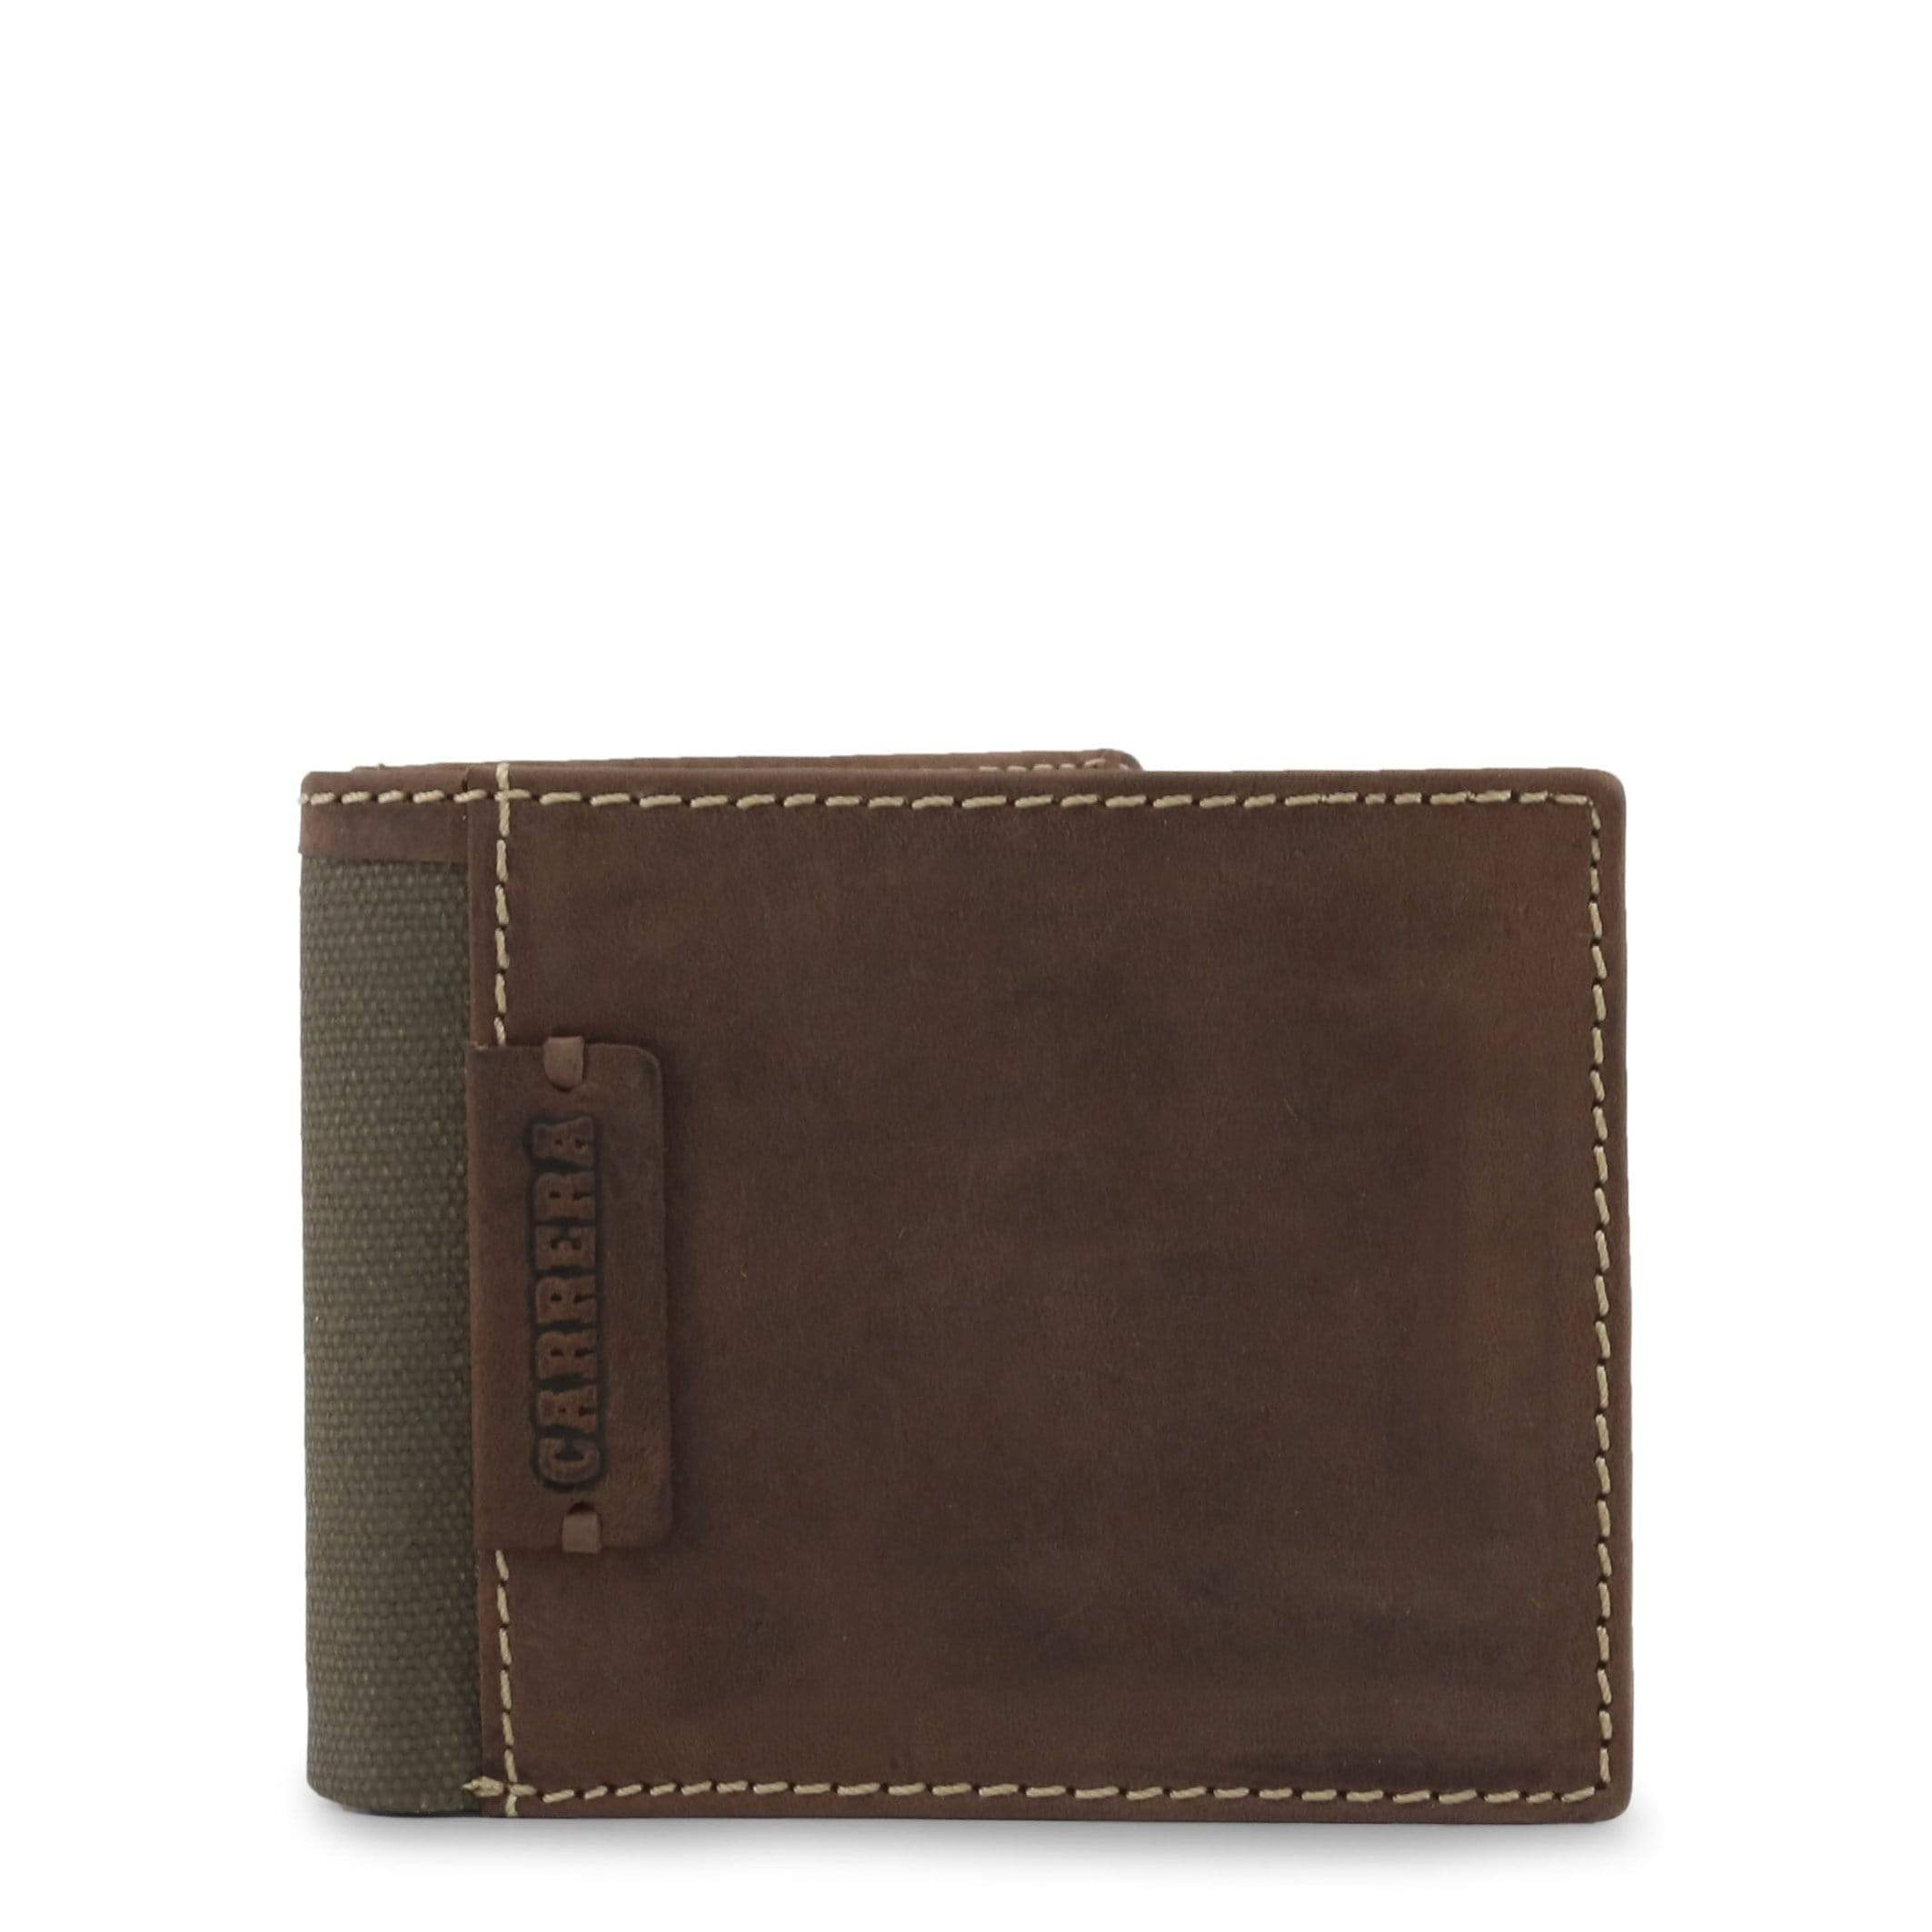 Carrera Jeans Accessories Wallets brown / NOSIZE Carrera Jeans - CB922B